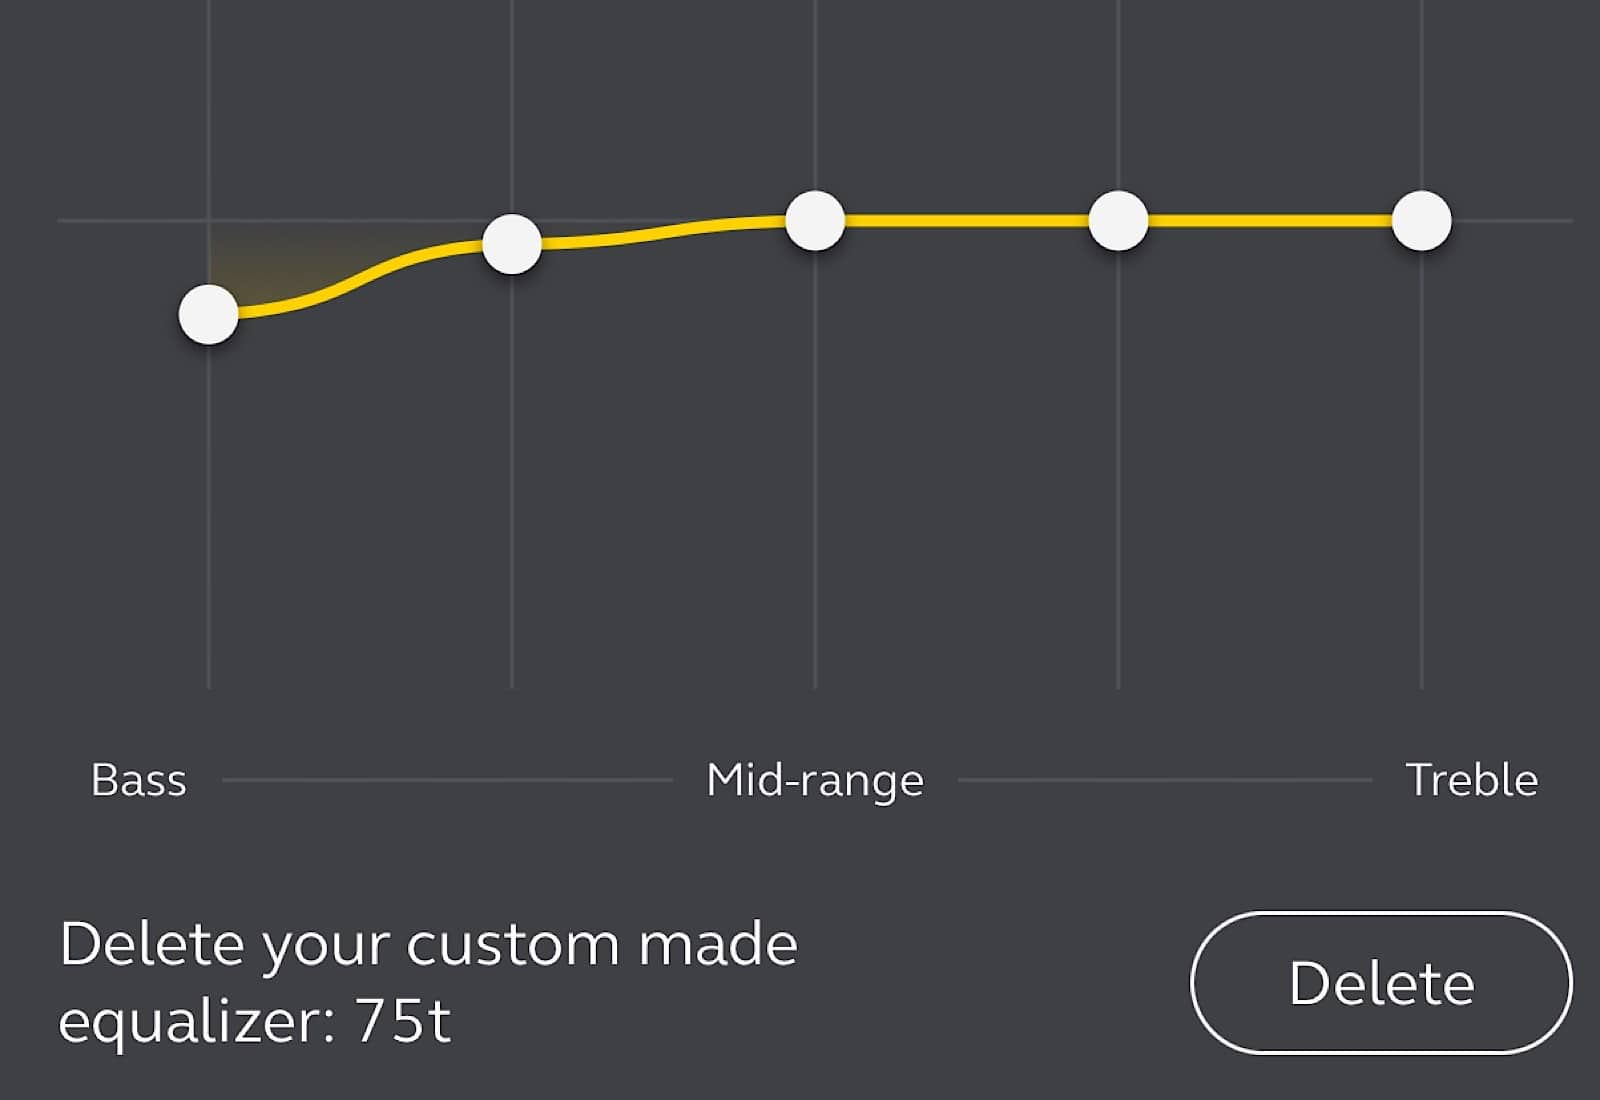 Our custom EQ setting managed to get the balance closer to where we think it should have been.